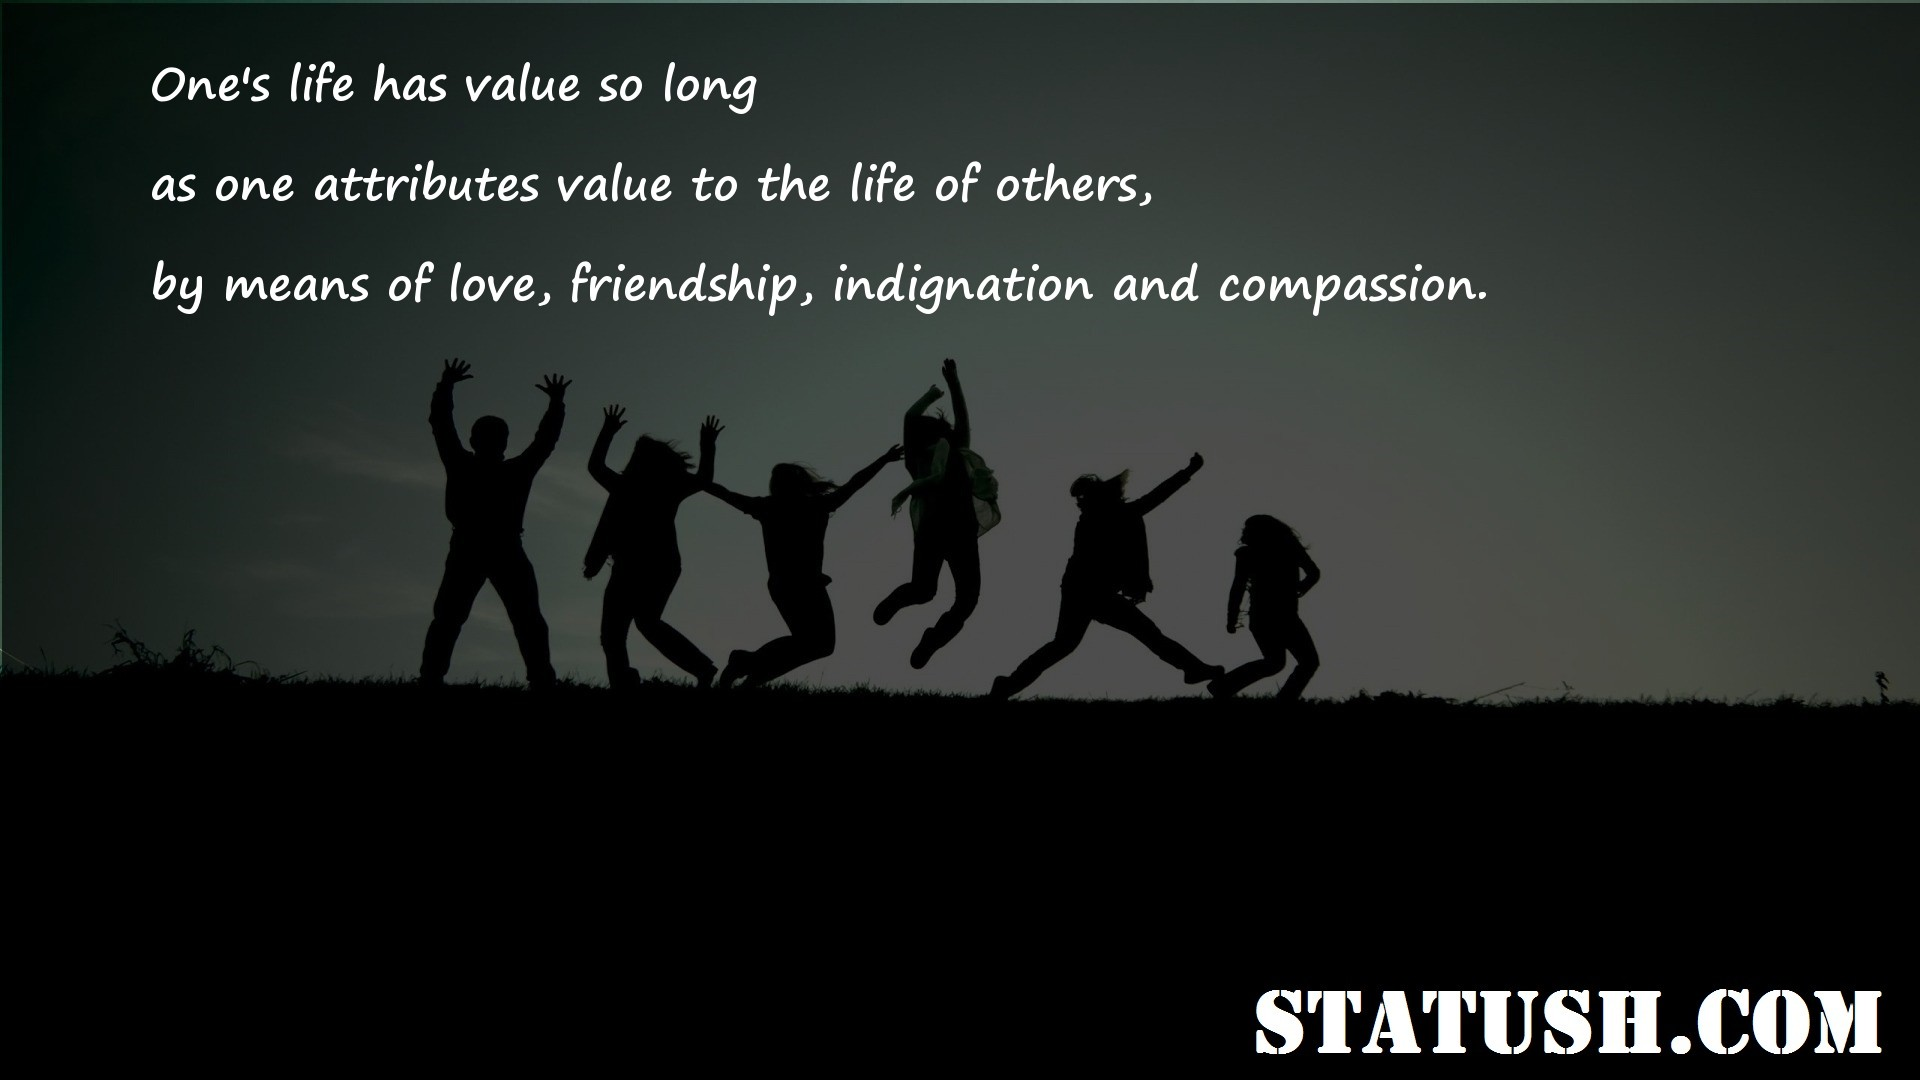 Ones life has value so long